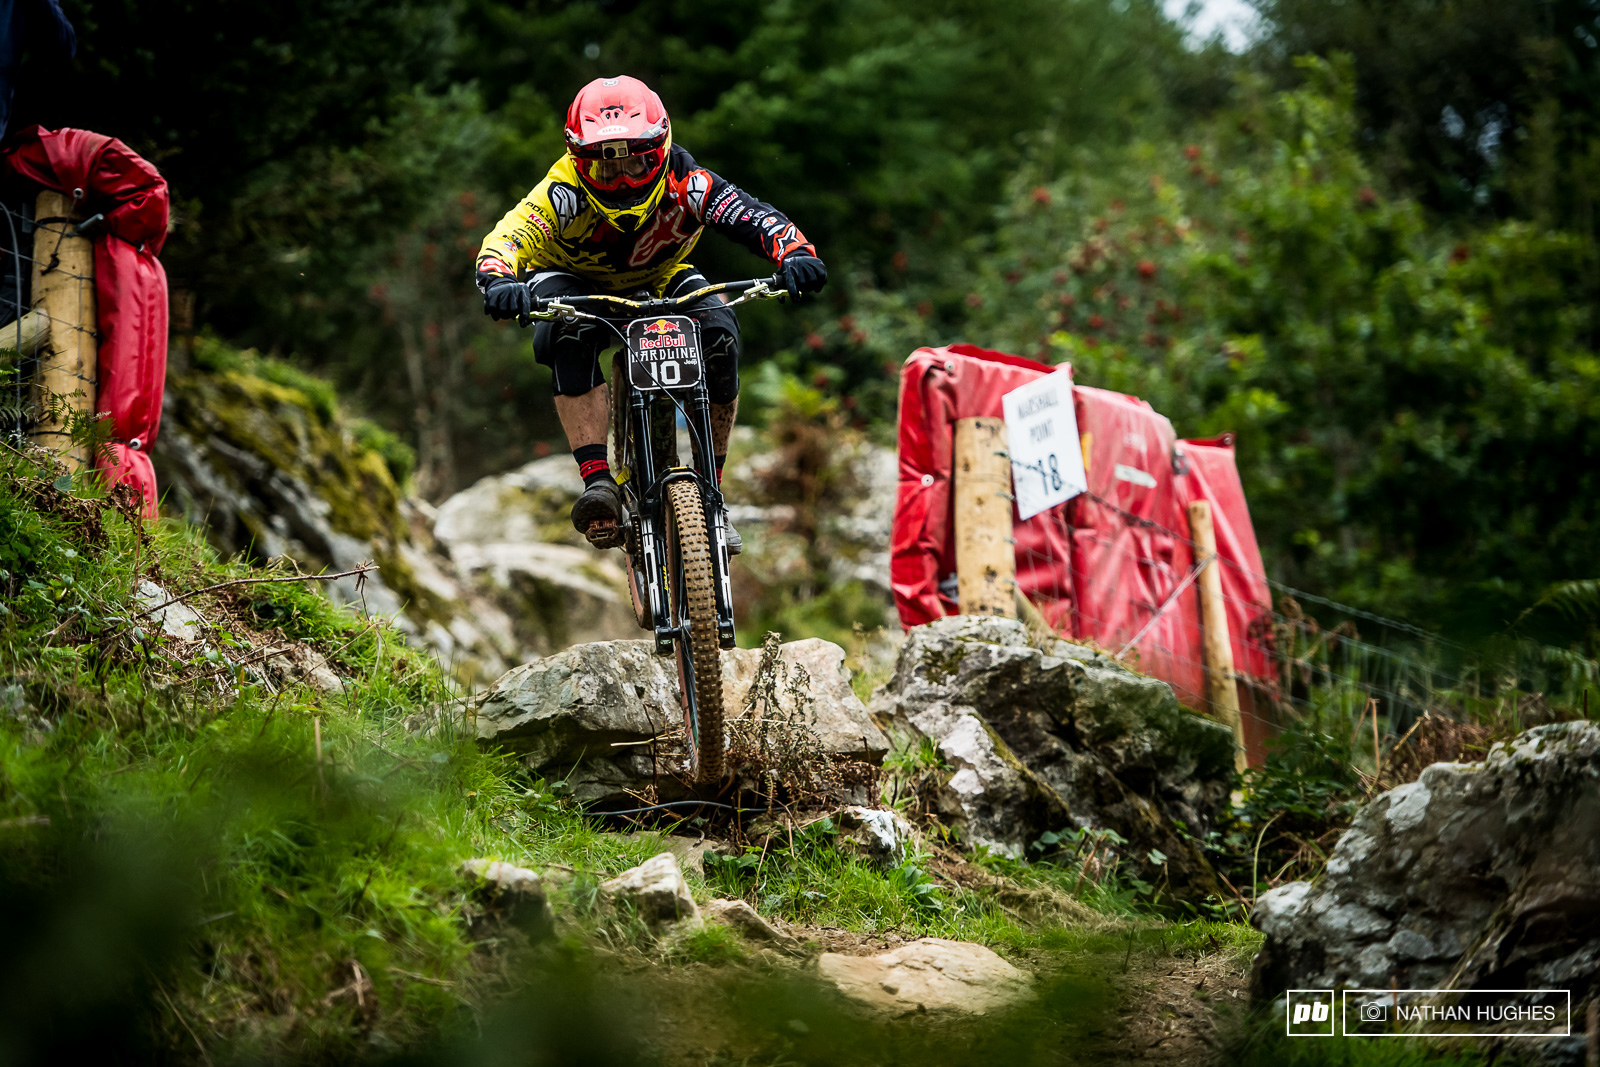 Mick Hannah rampaging through the gnar of the final woods for 6th place.